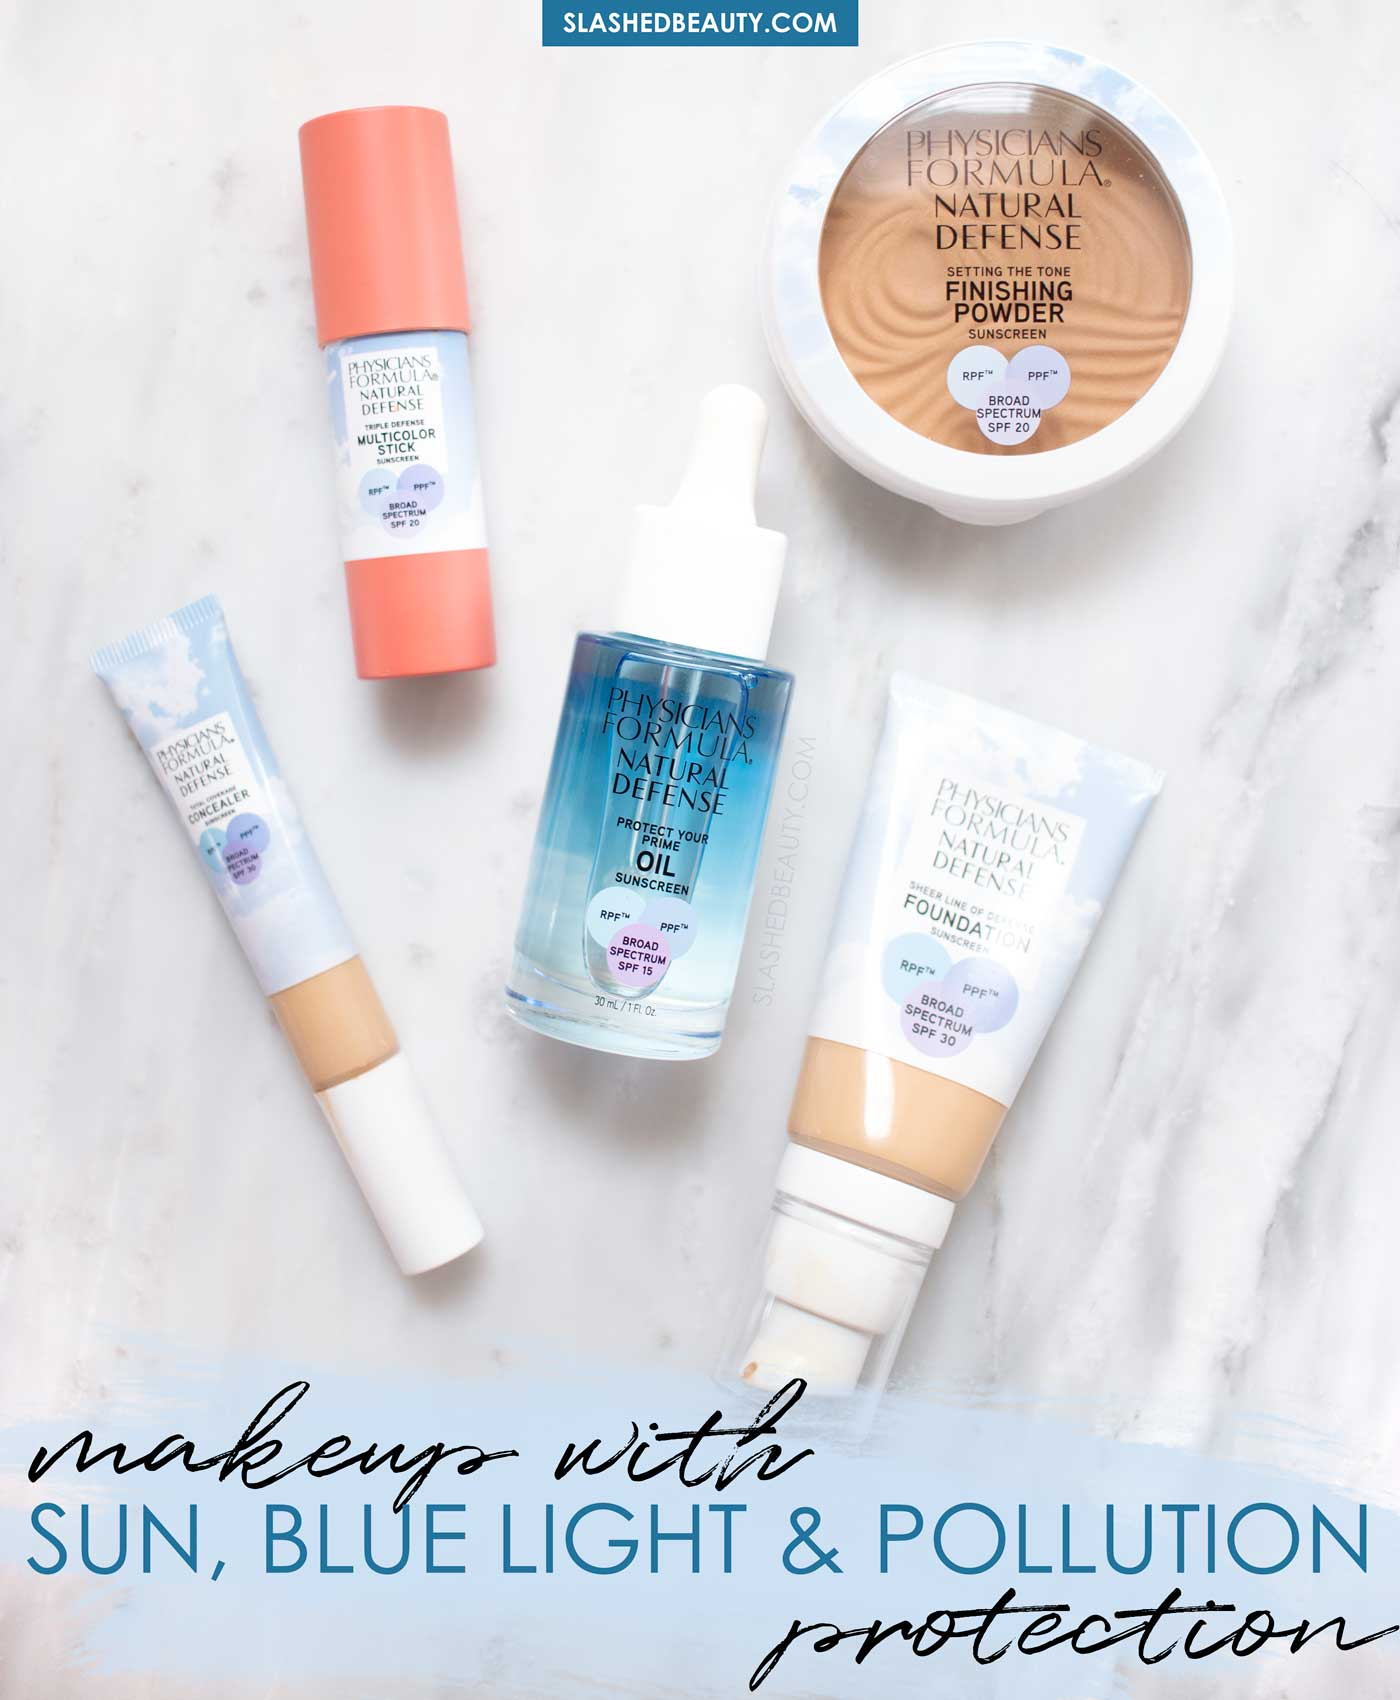 New Physicians Formula Makeup with SPF, Blue Light & Pollution Protection | Physicians Formula Natural Defense Makeup Review | Slashed Beauty